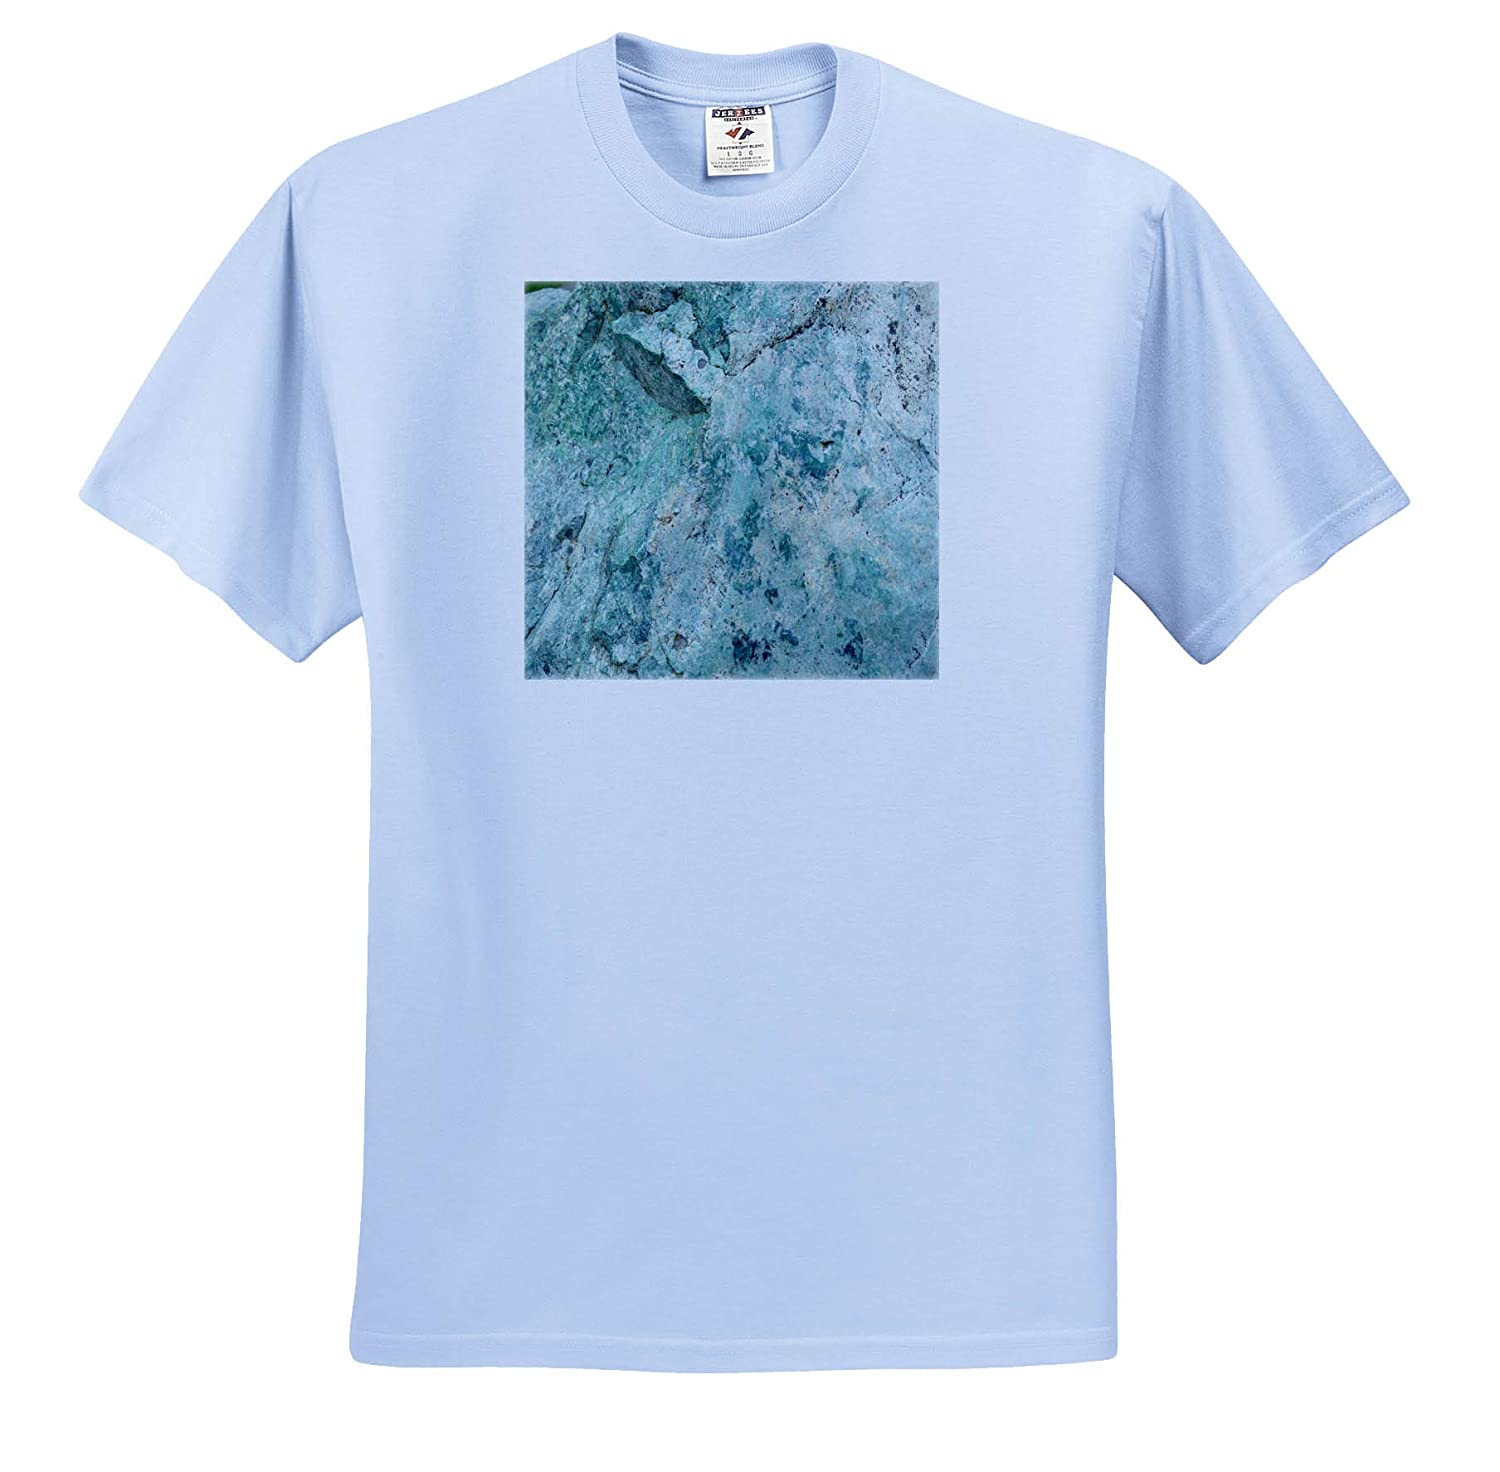 Gems Glass Stones ts/_313420 Adult T-Shirt XL 3dRose Lens Art by Florene Image of Closeup of Pretty Jadeite Gem